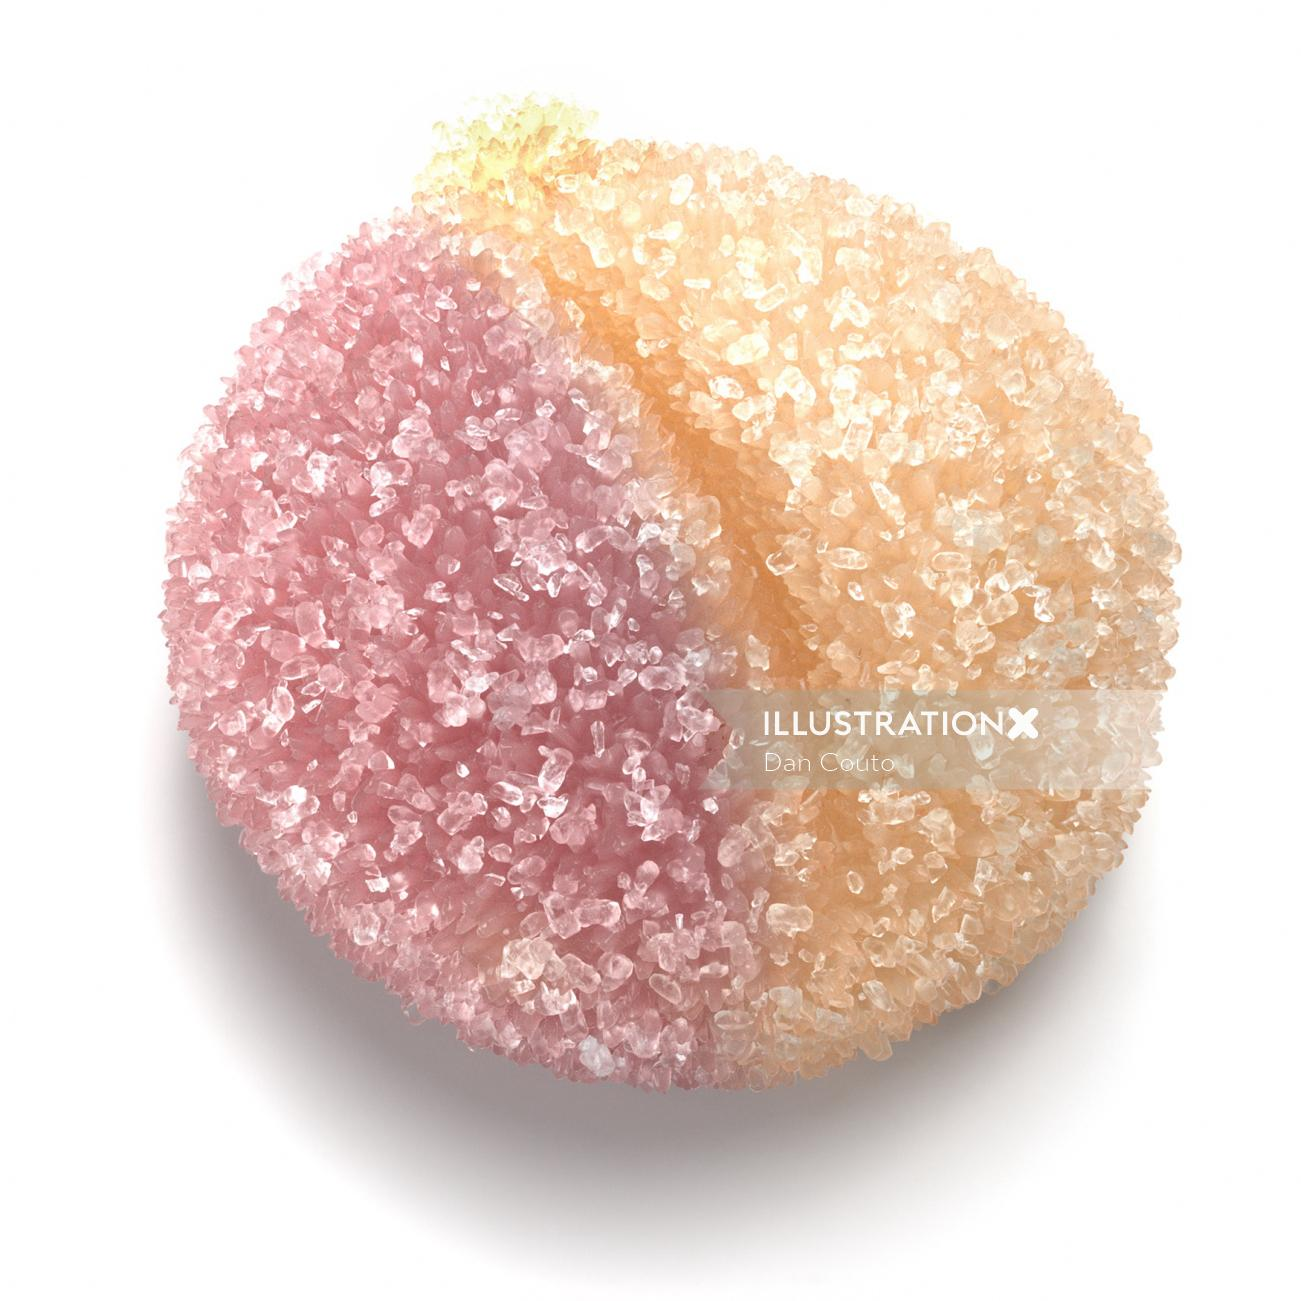 Naturalistic of Sour peach candy